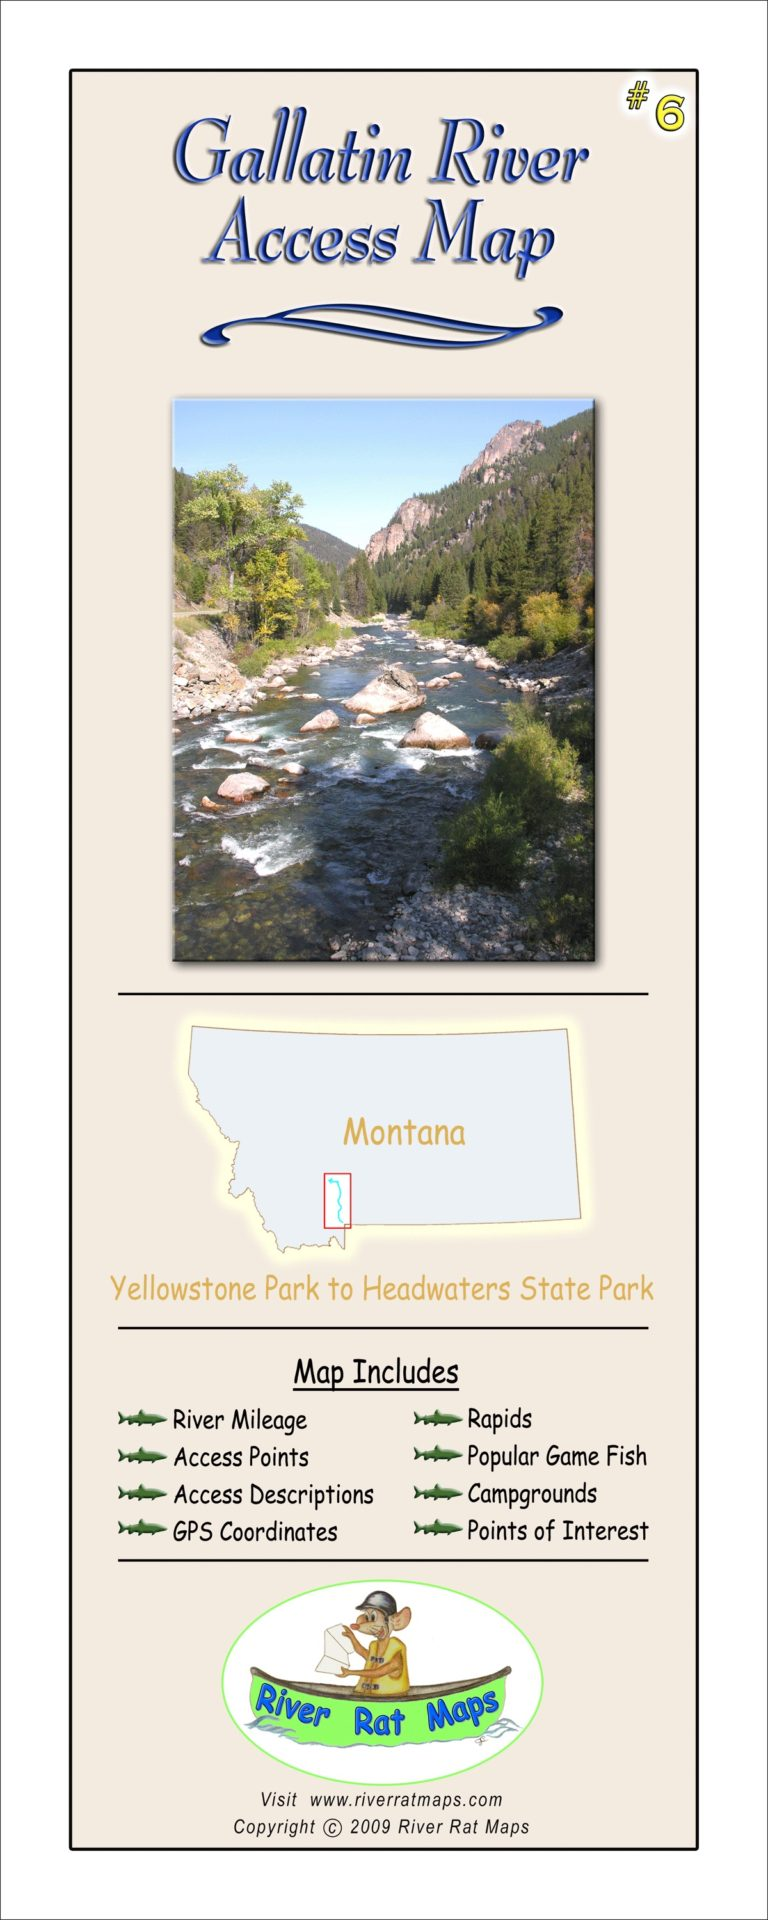 Gallatin River Map by River Rat Maps